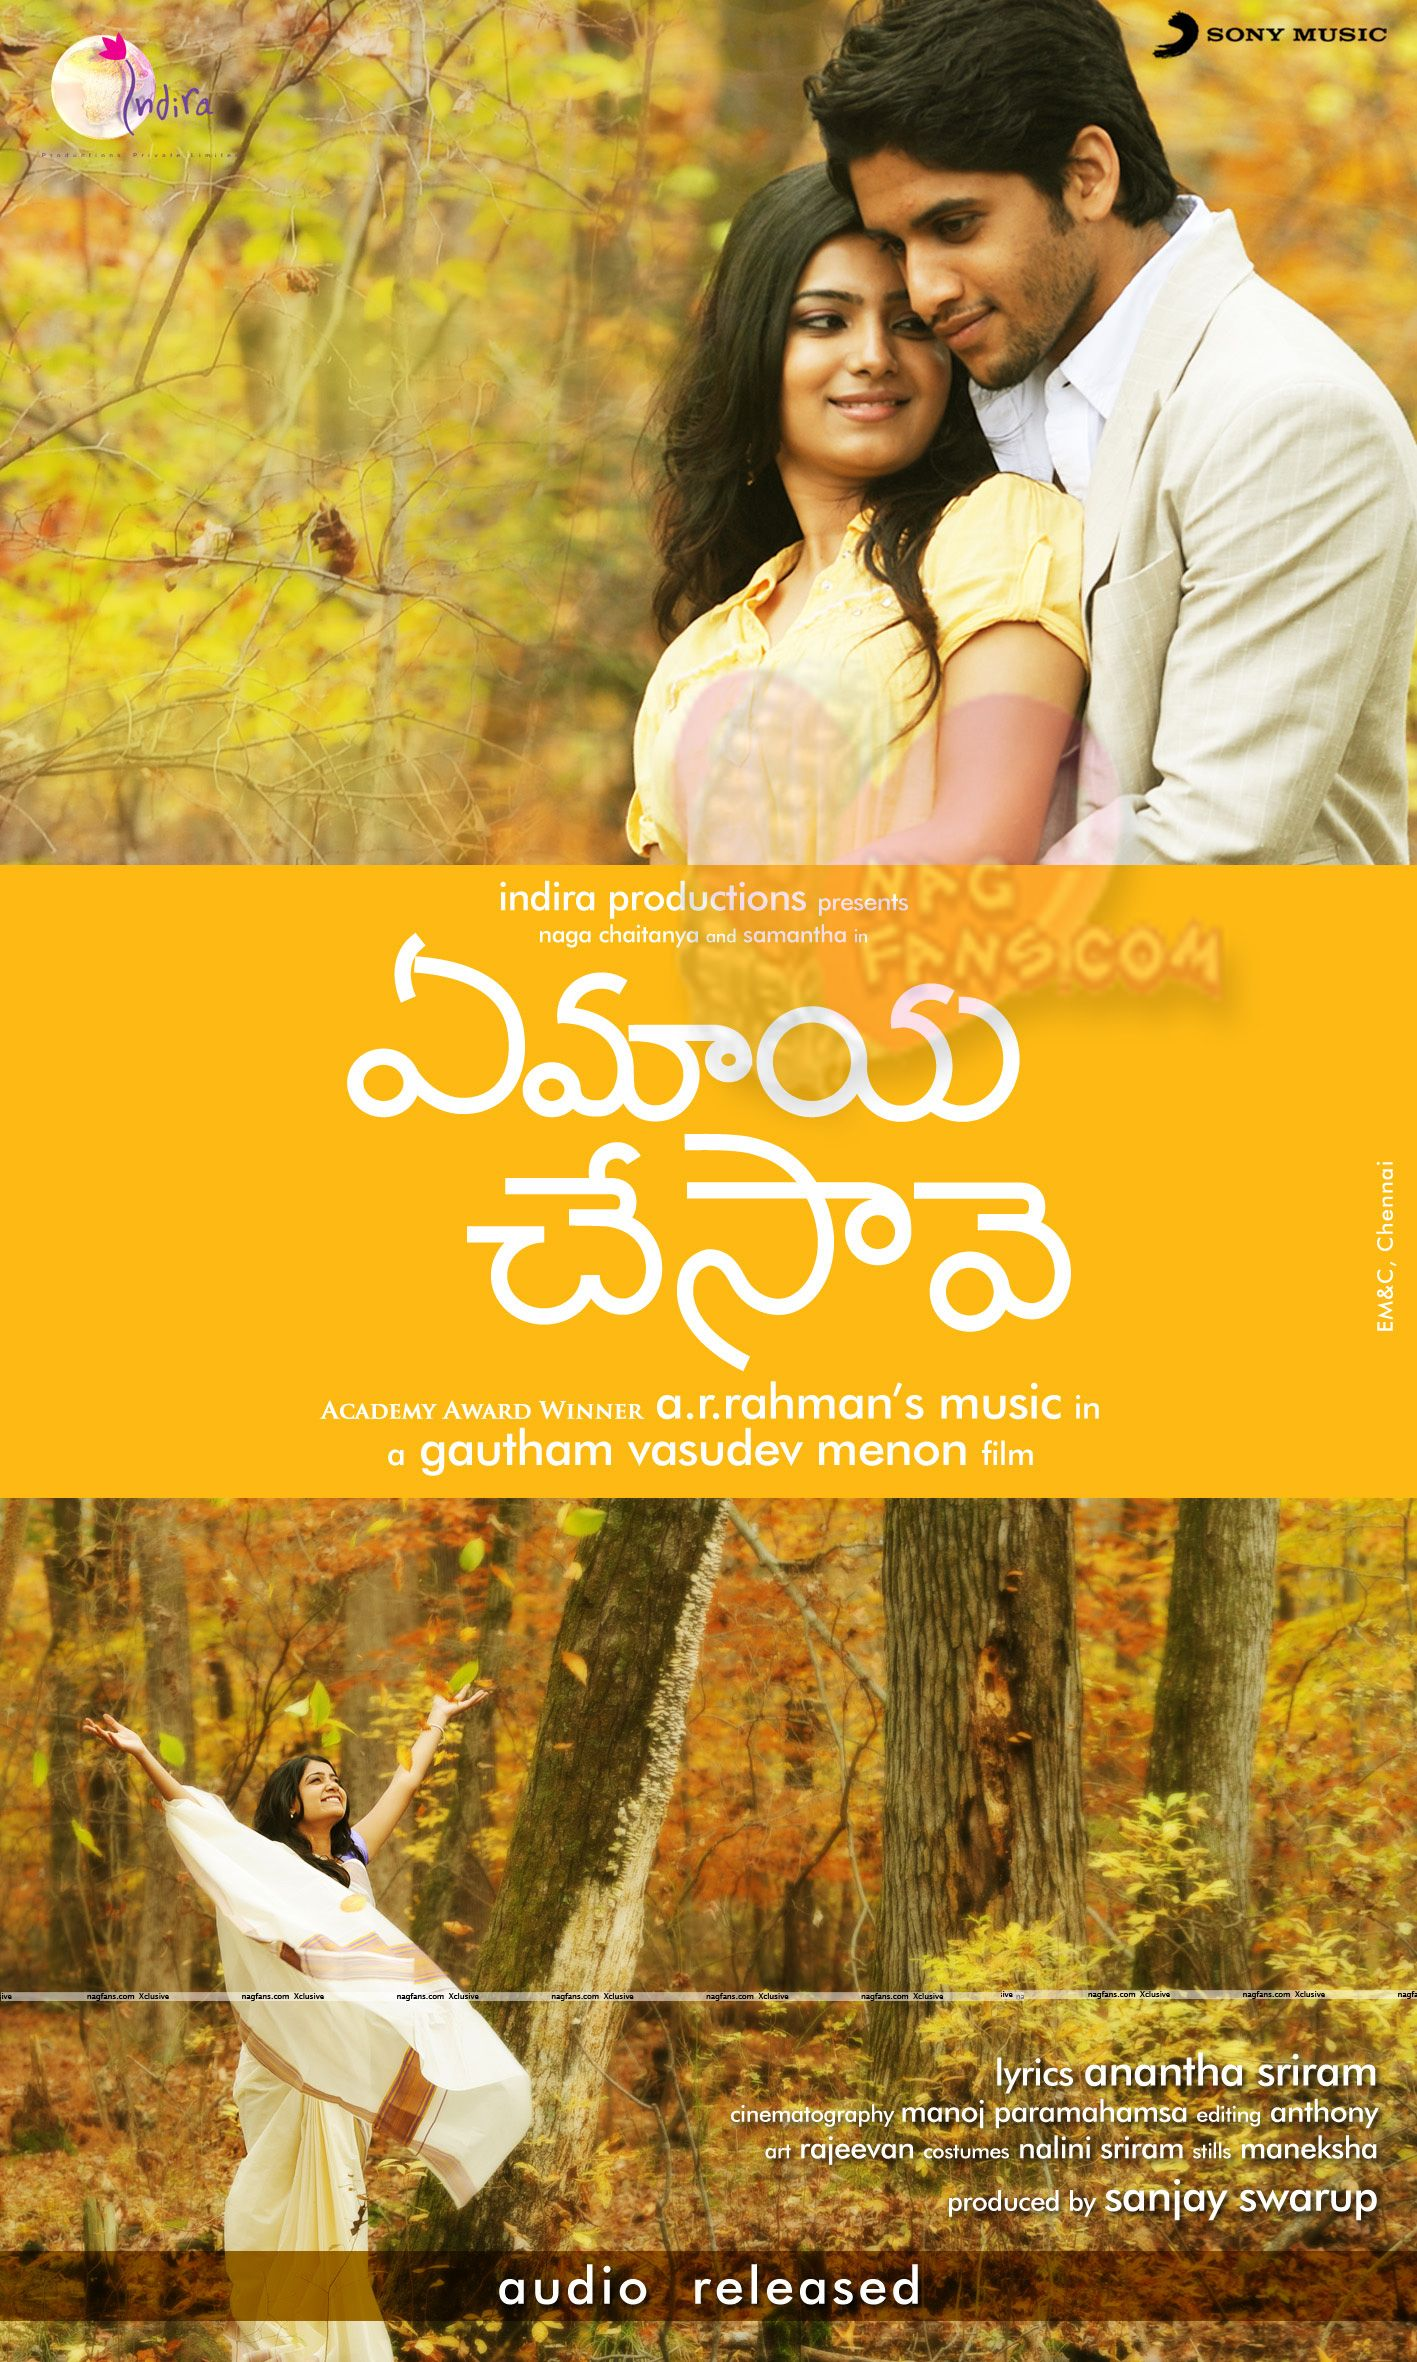 Ye maaya chesave photos: hd images, pictures, stills, first look.